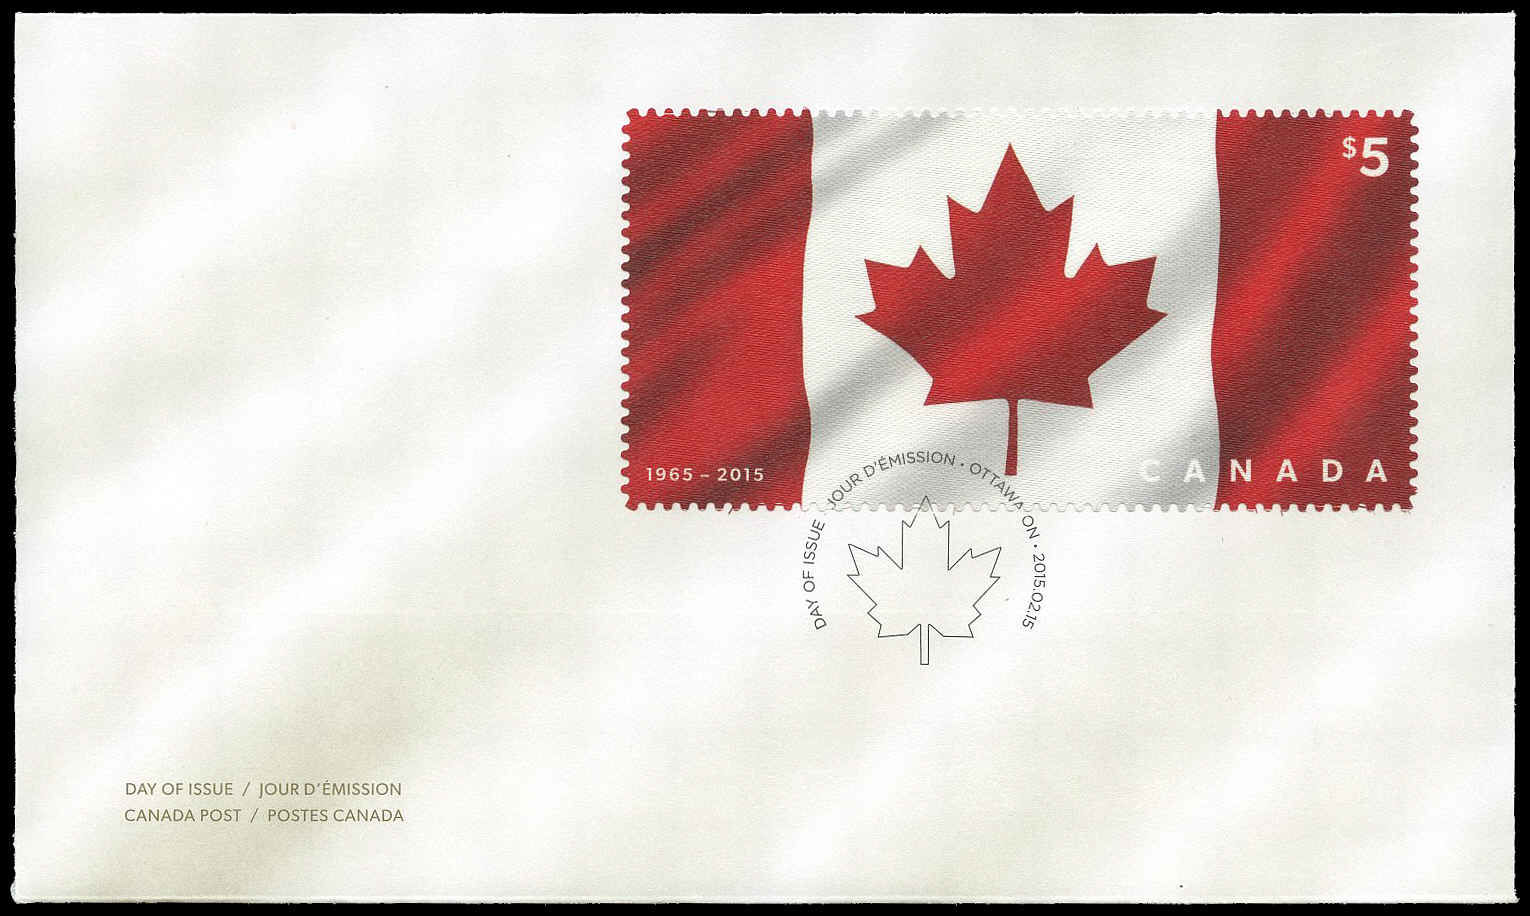 Canada - Scott #2808 (2015) first day cover